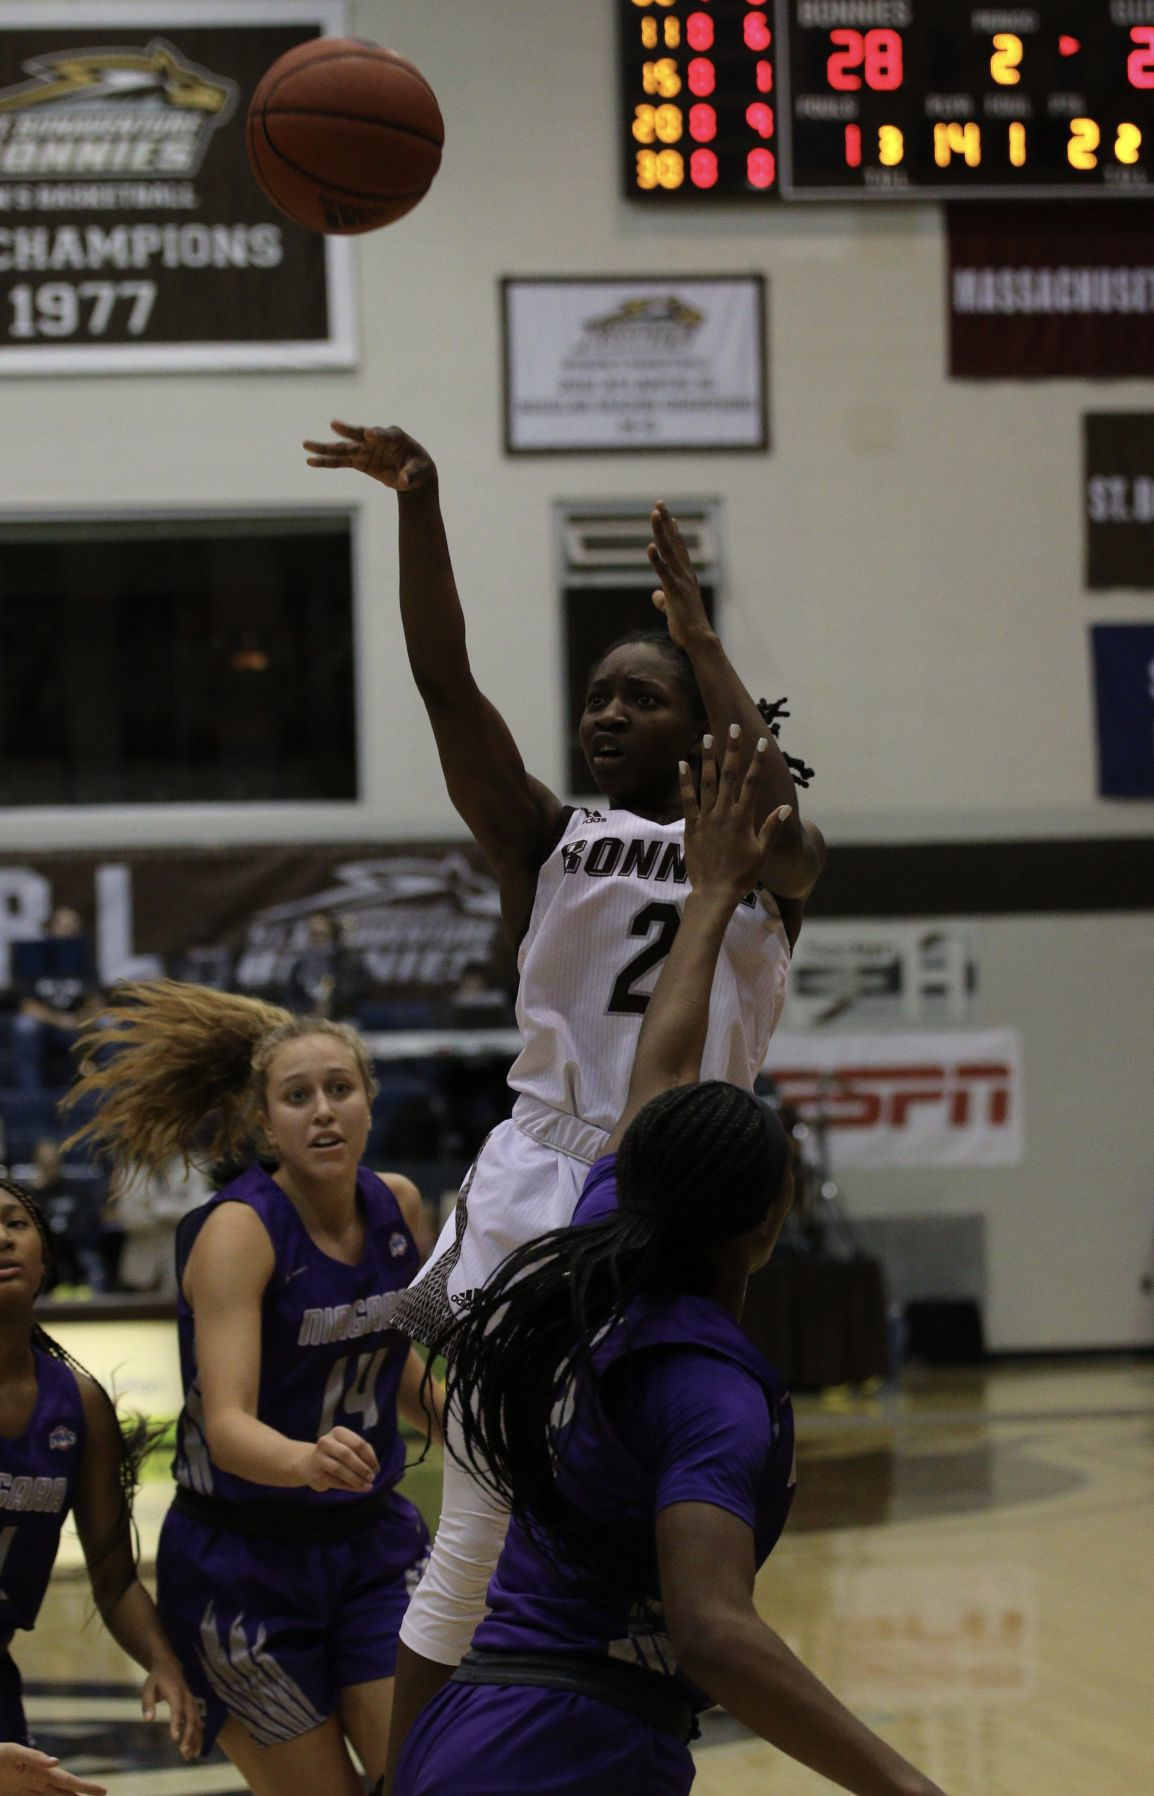 Bonnies use late comeback to defeat Niagara, 71-67, in Overtime